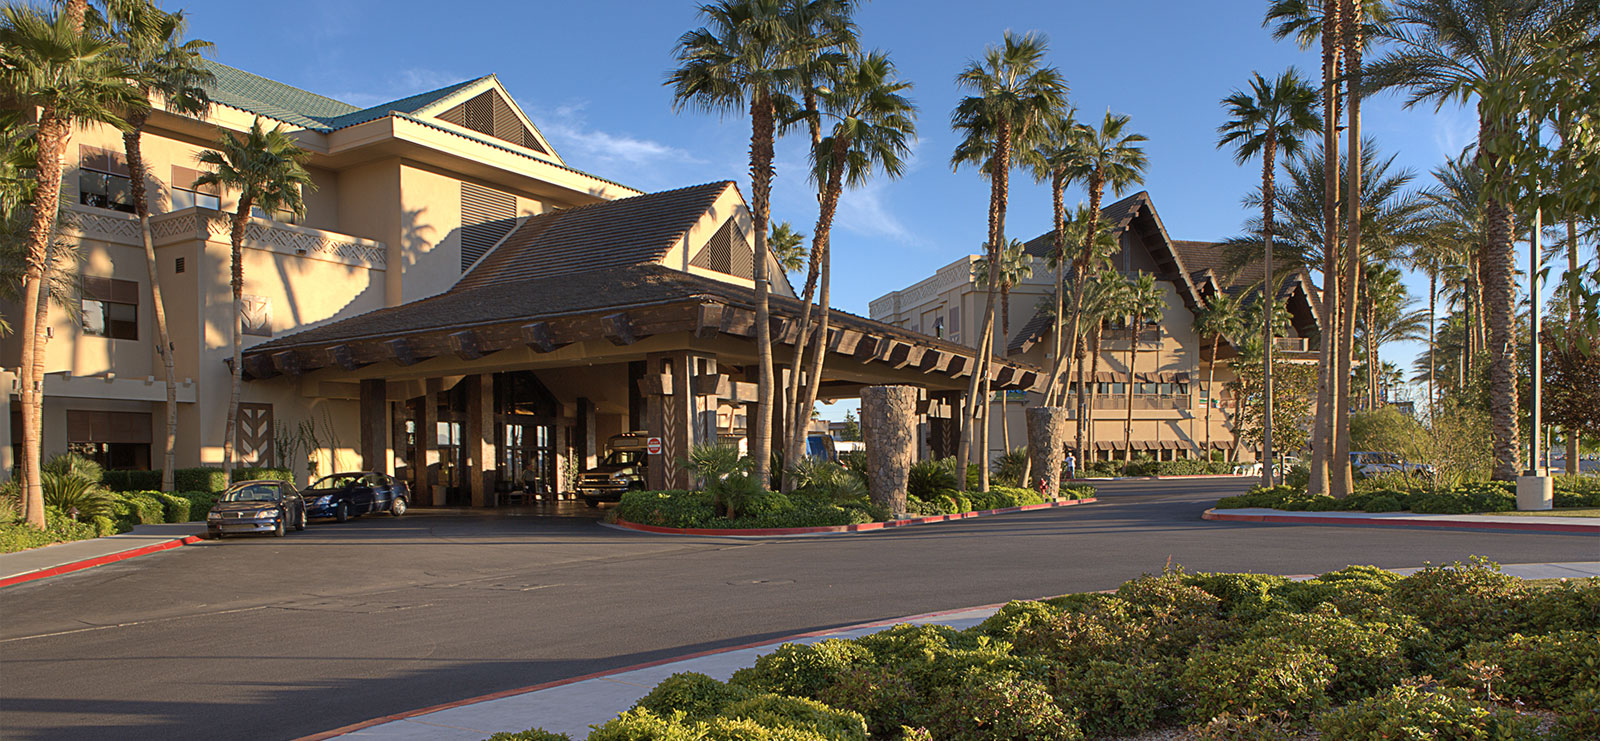 Family Friendly Las Vegas Resort Amp Hotel Tahiti Village